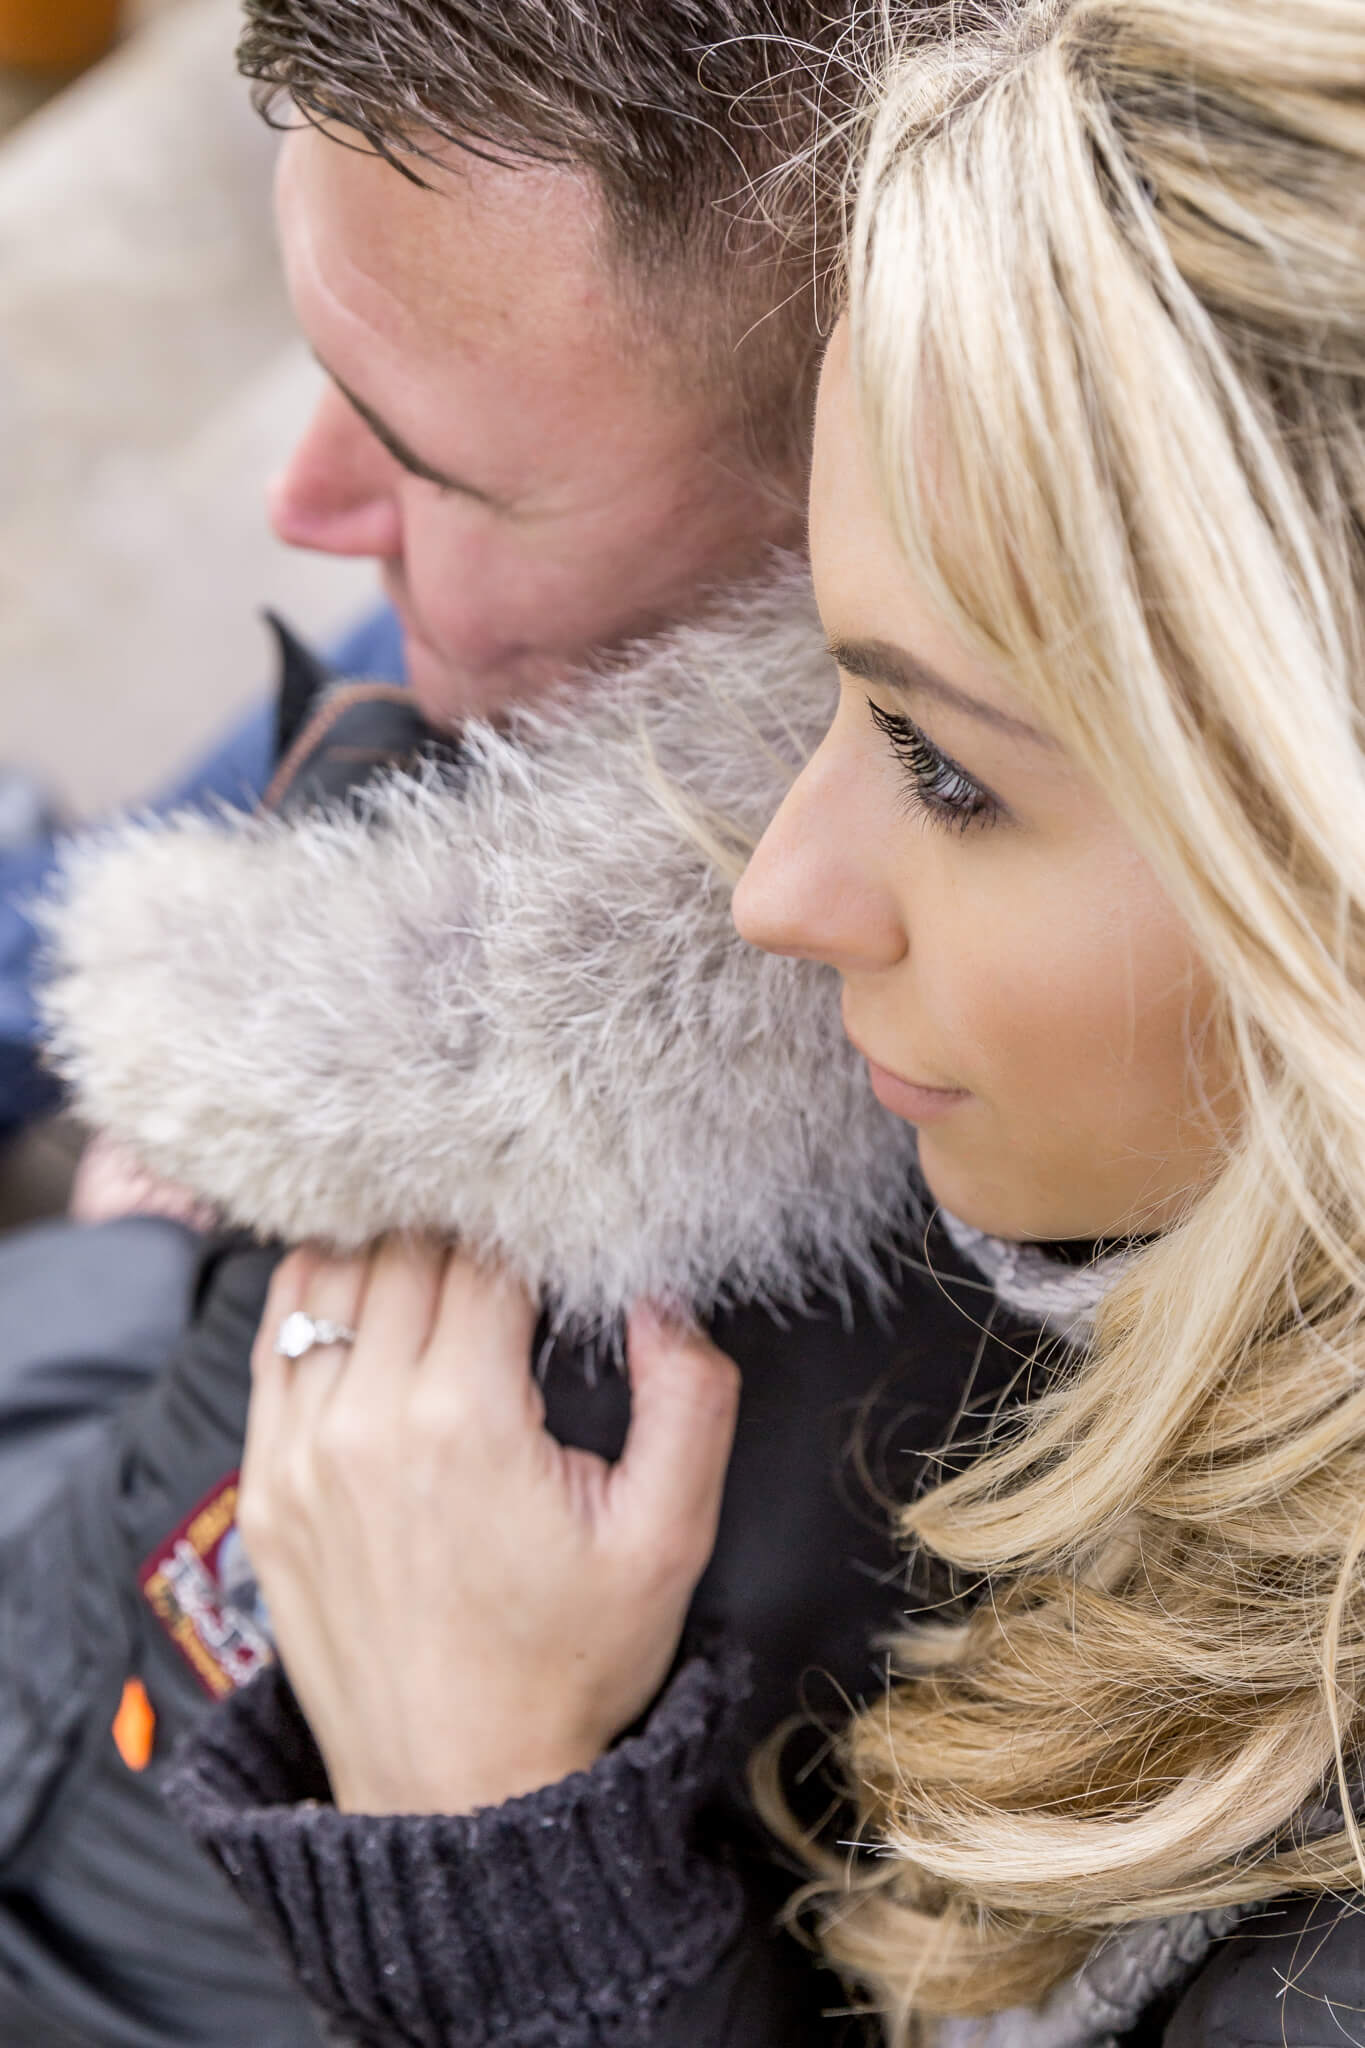 Engagement photos taken at The Grove at Hertfordshire by Natalie Chiverton Photography